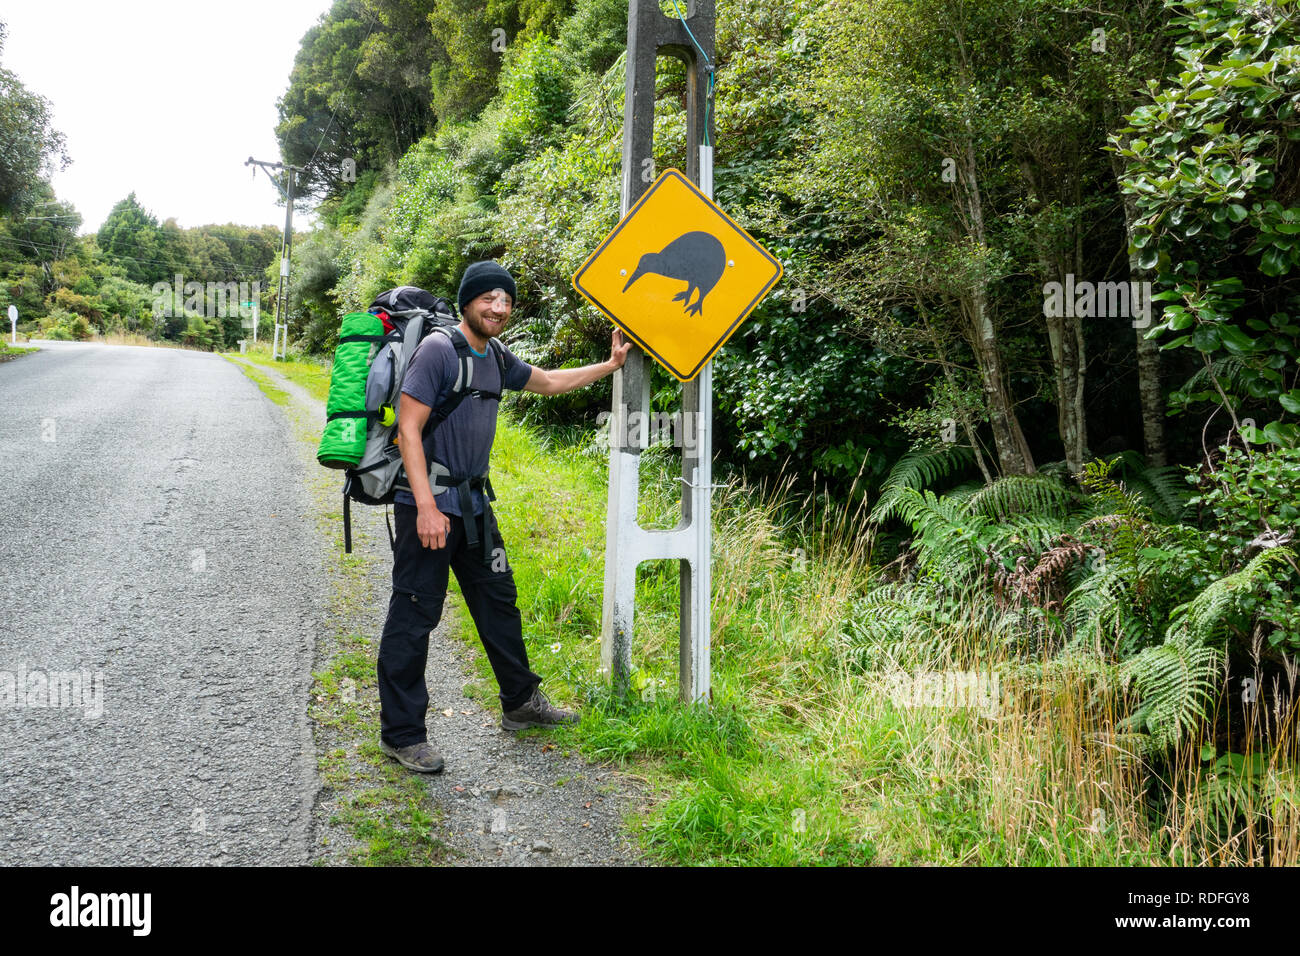 Happy young backpacker with Kiwi bird sign on Stewart Island in New Zealand, popular place with tourists for spotting Kiwi birds. - Stock Image